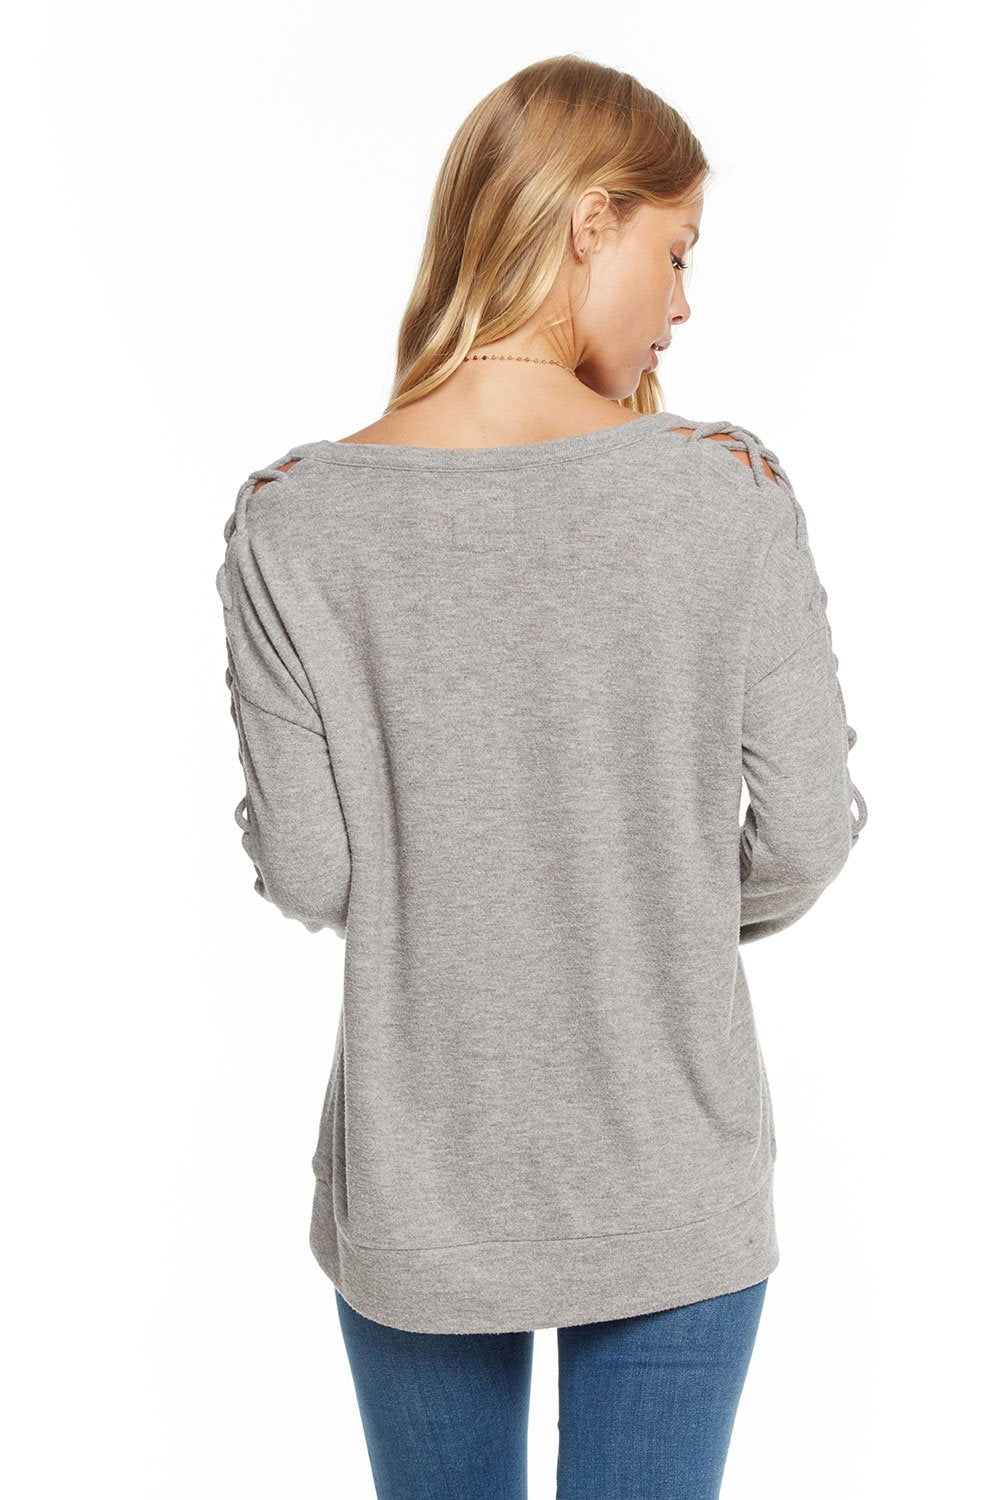 Chaser Love Knit Sleepwear Lace Up Dolman Drop Shoulder Pullover